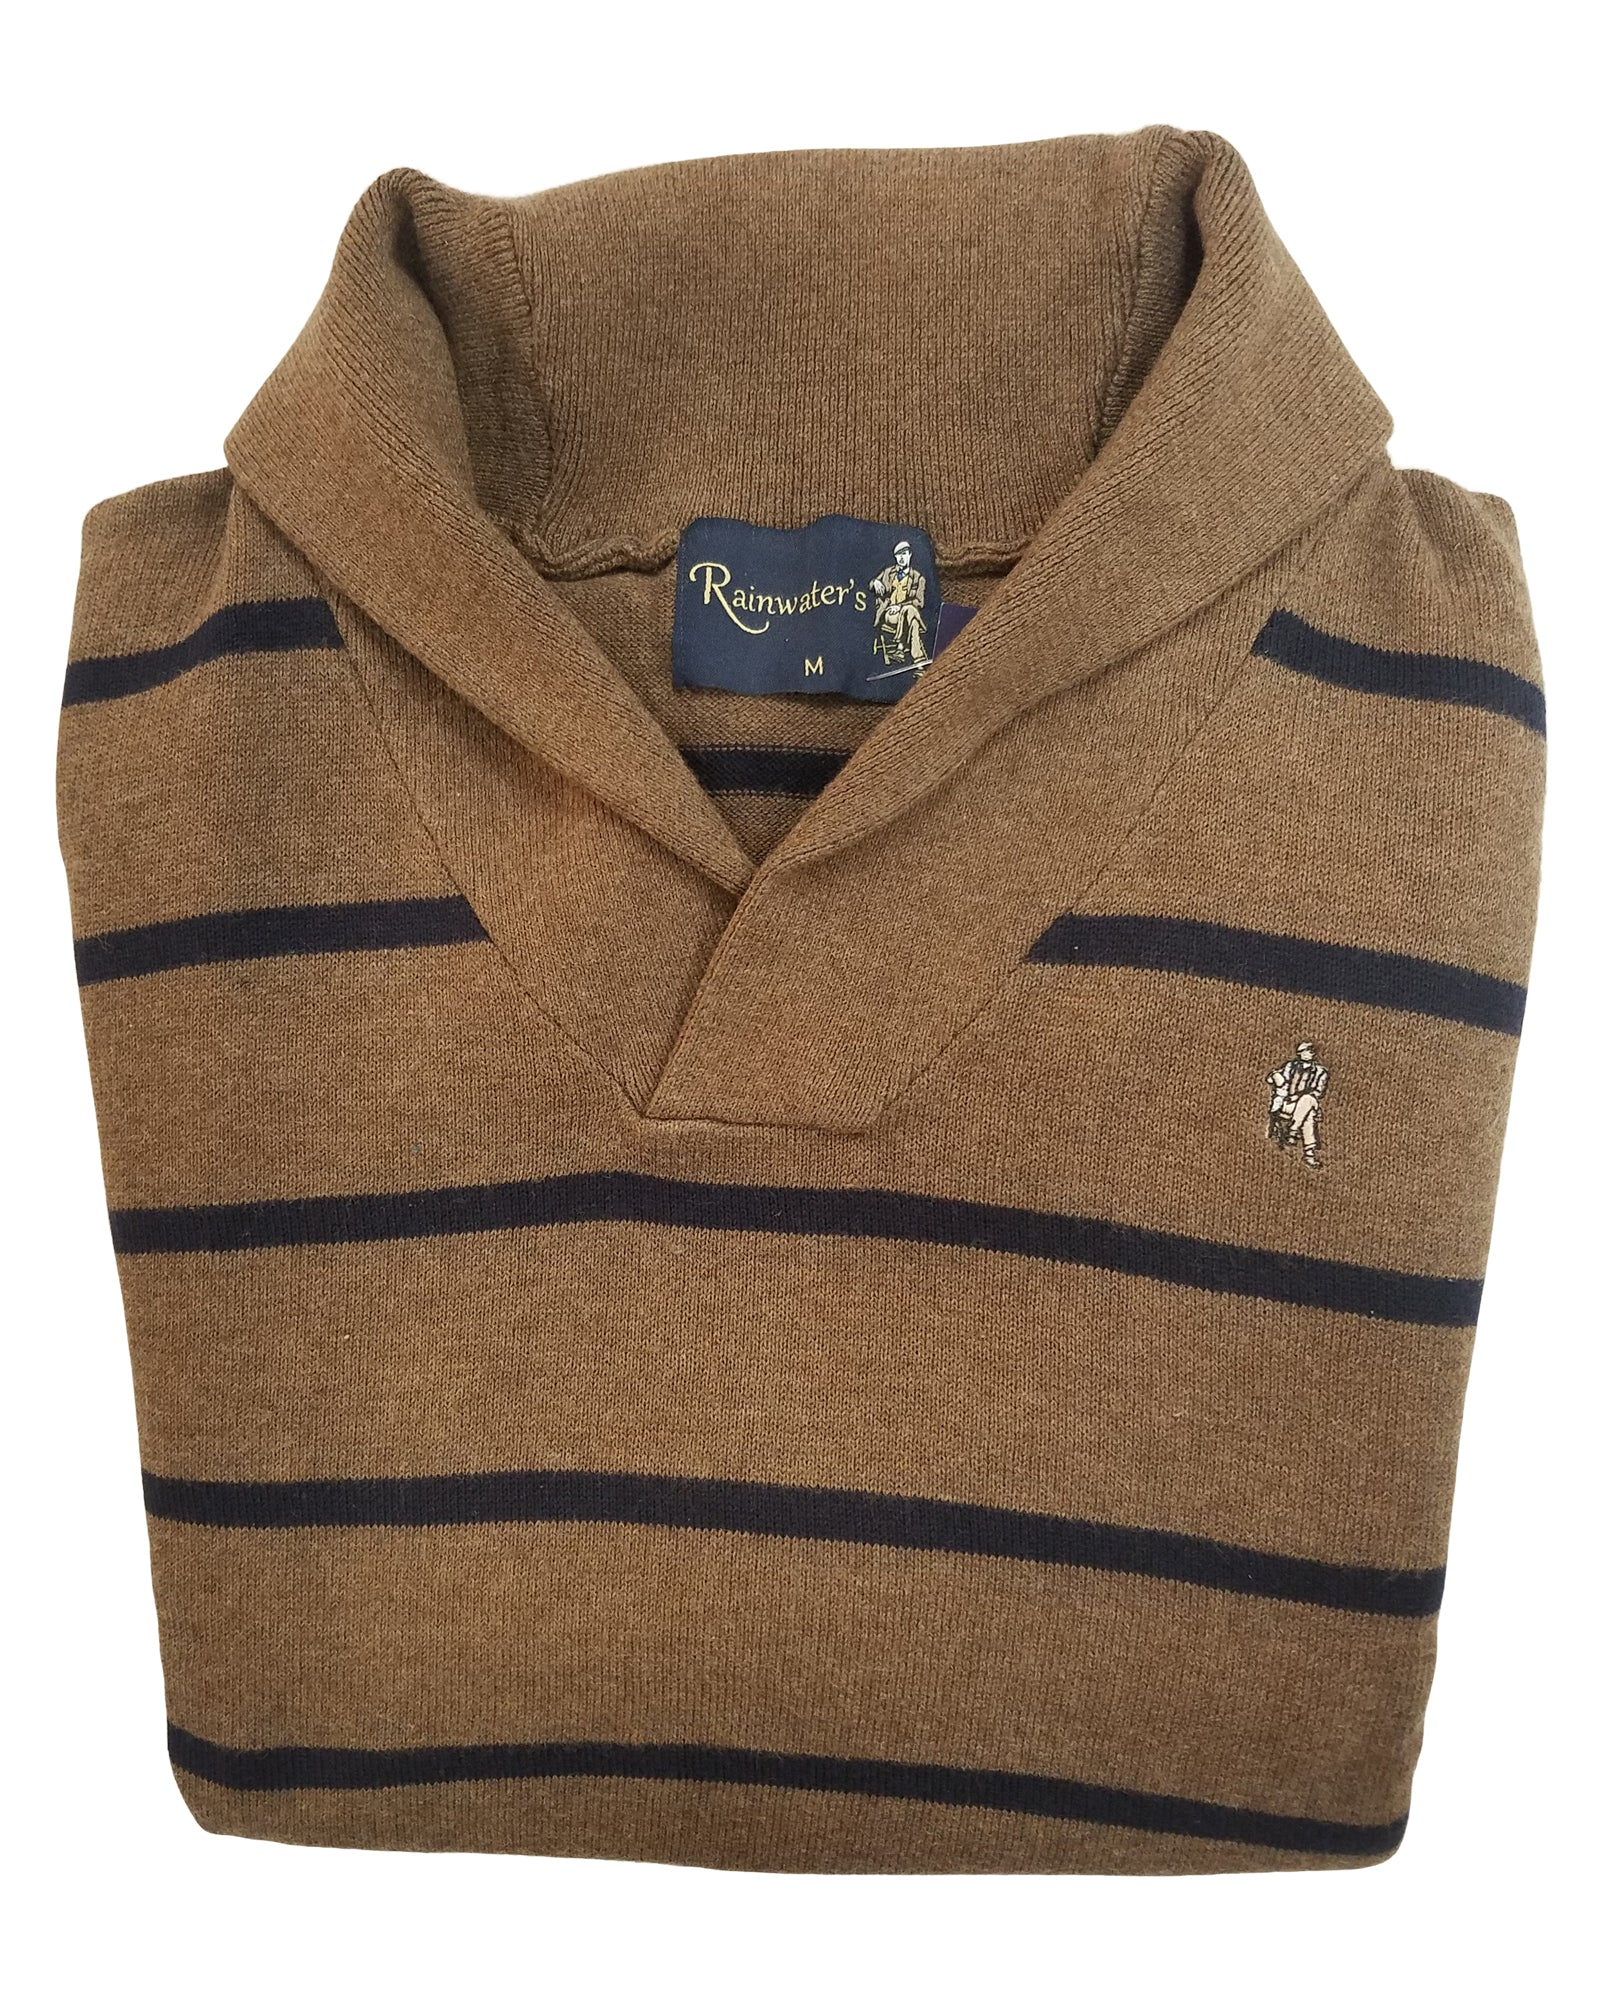 Shawl Collar Sweater in Brown With Navy Stripes Cotton Blend - Rainwater's Men's Clothing and Tuxedo Rental